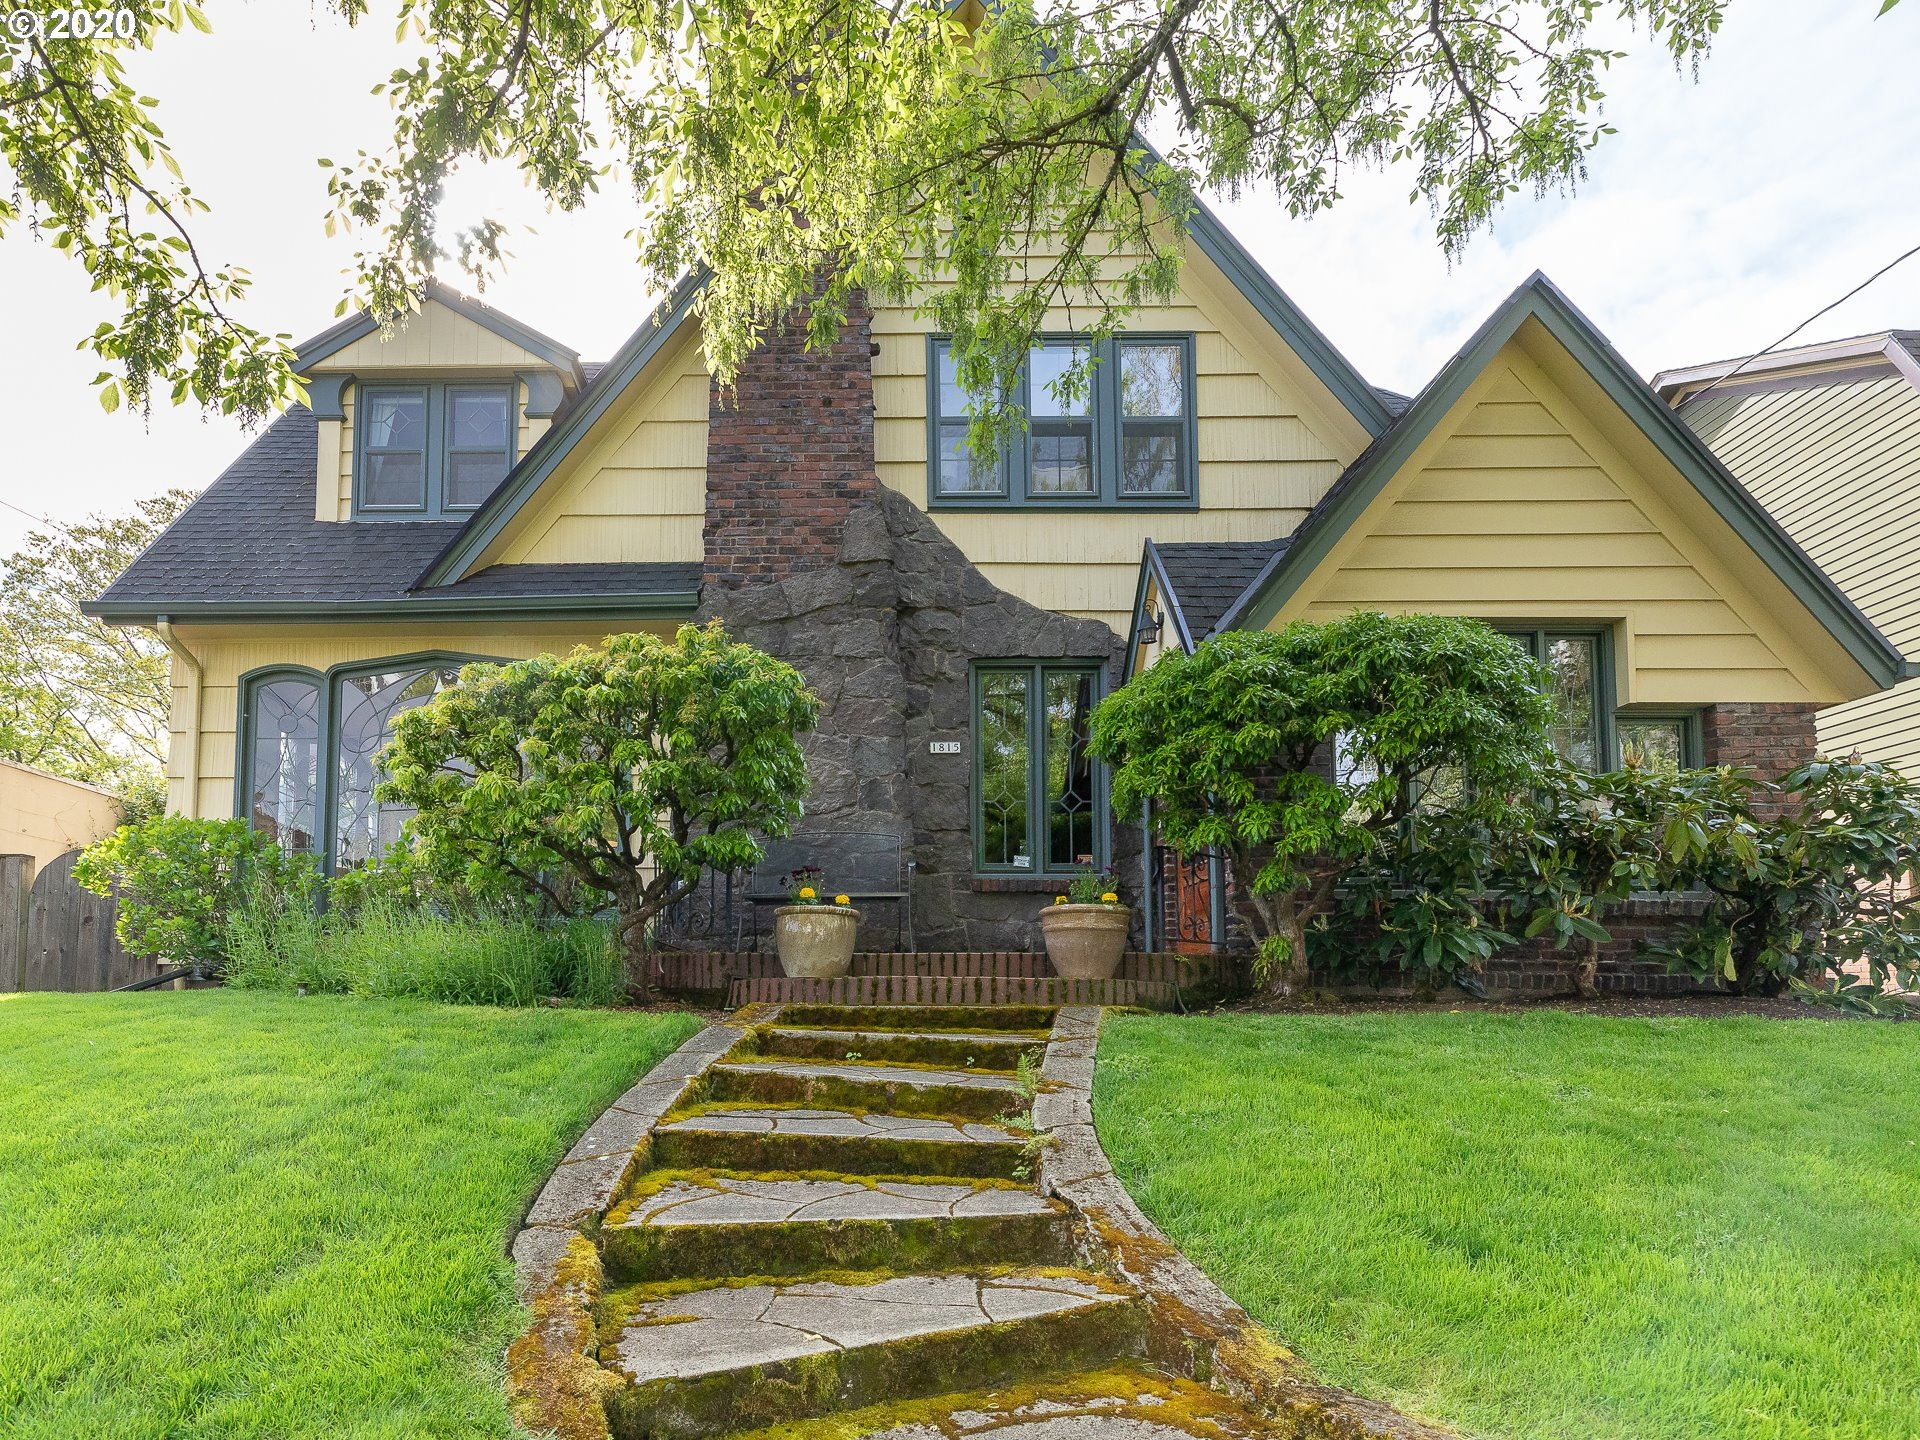 1815 SE 24TH AVE, Portland, OR 97214 - MLS#: 20413755